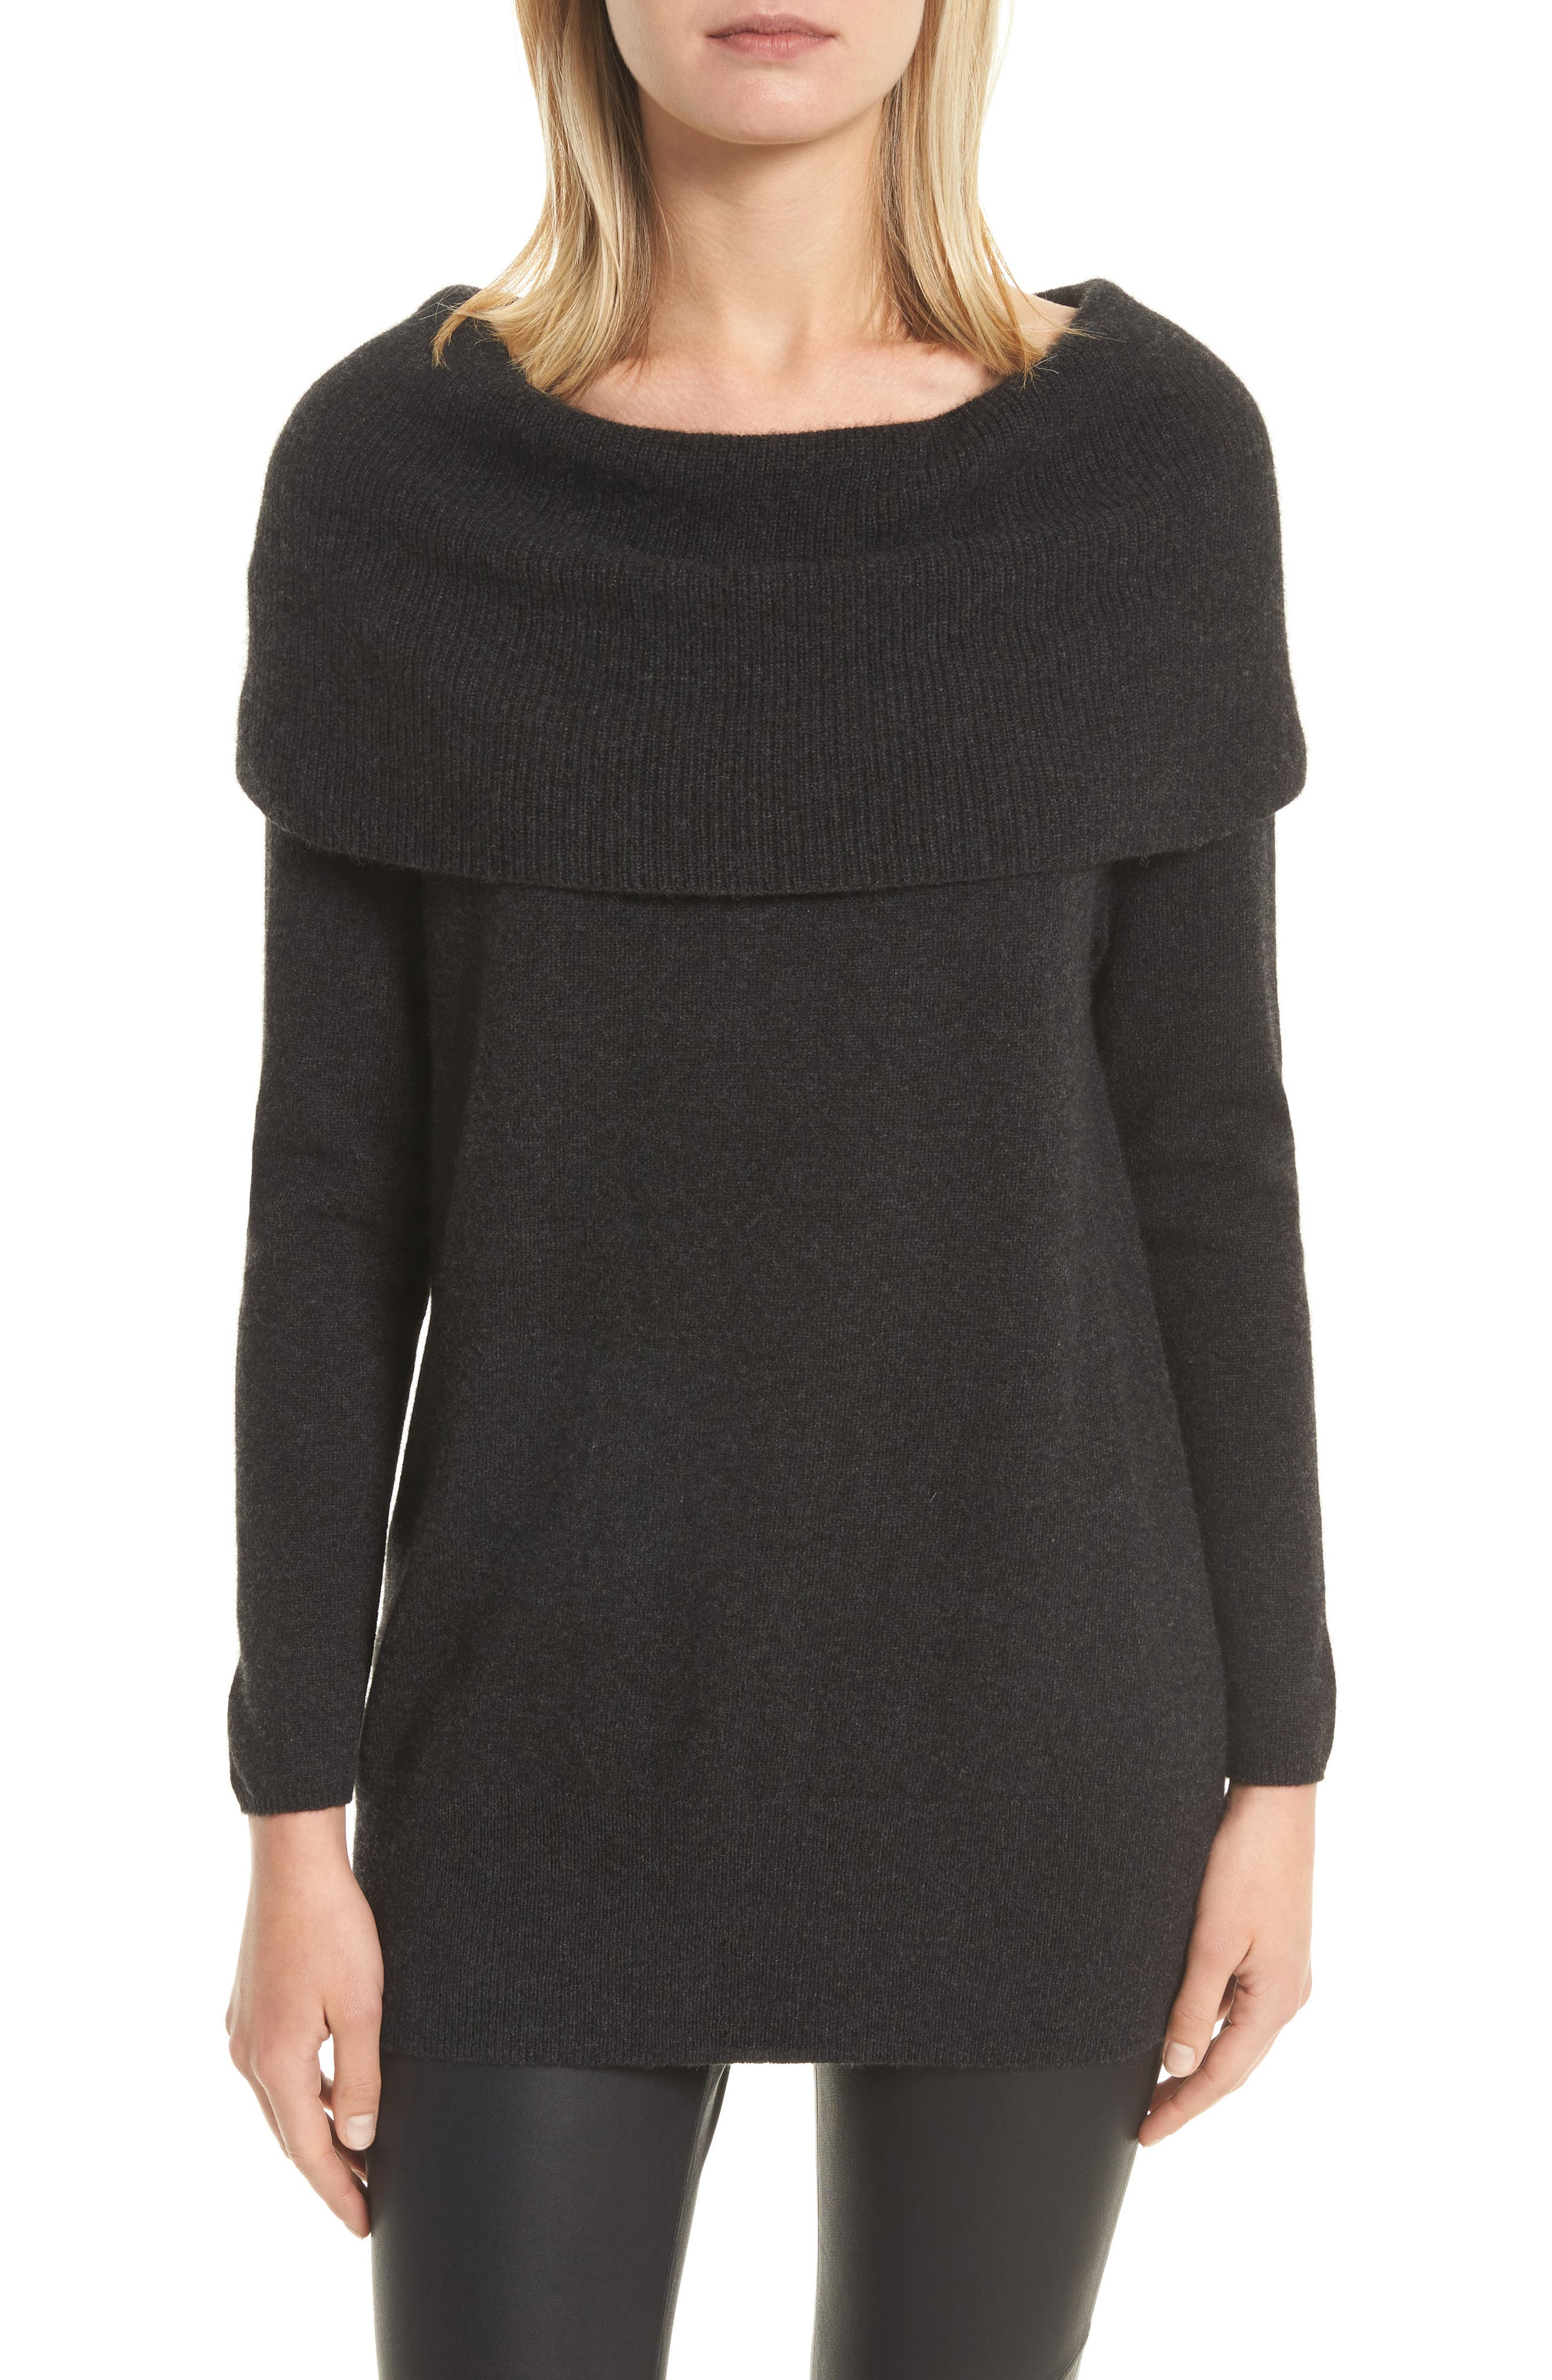 Alternate Image 1 Selected - Joie Sibel Wool & Cashmere Sweater